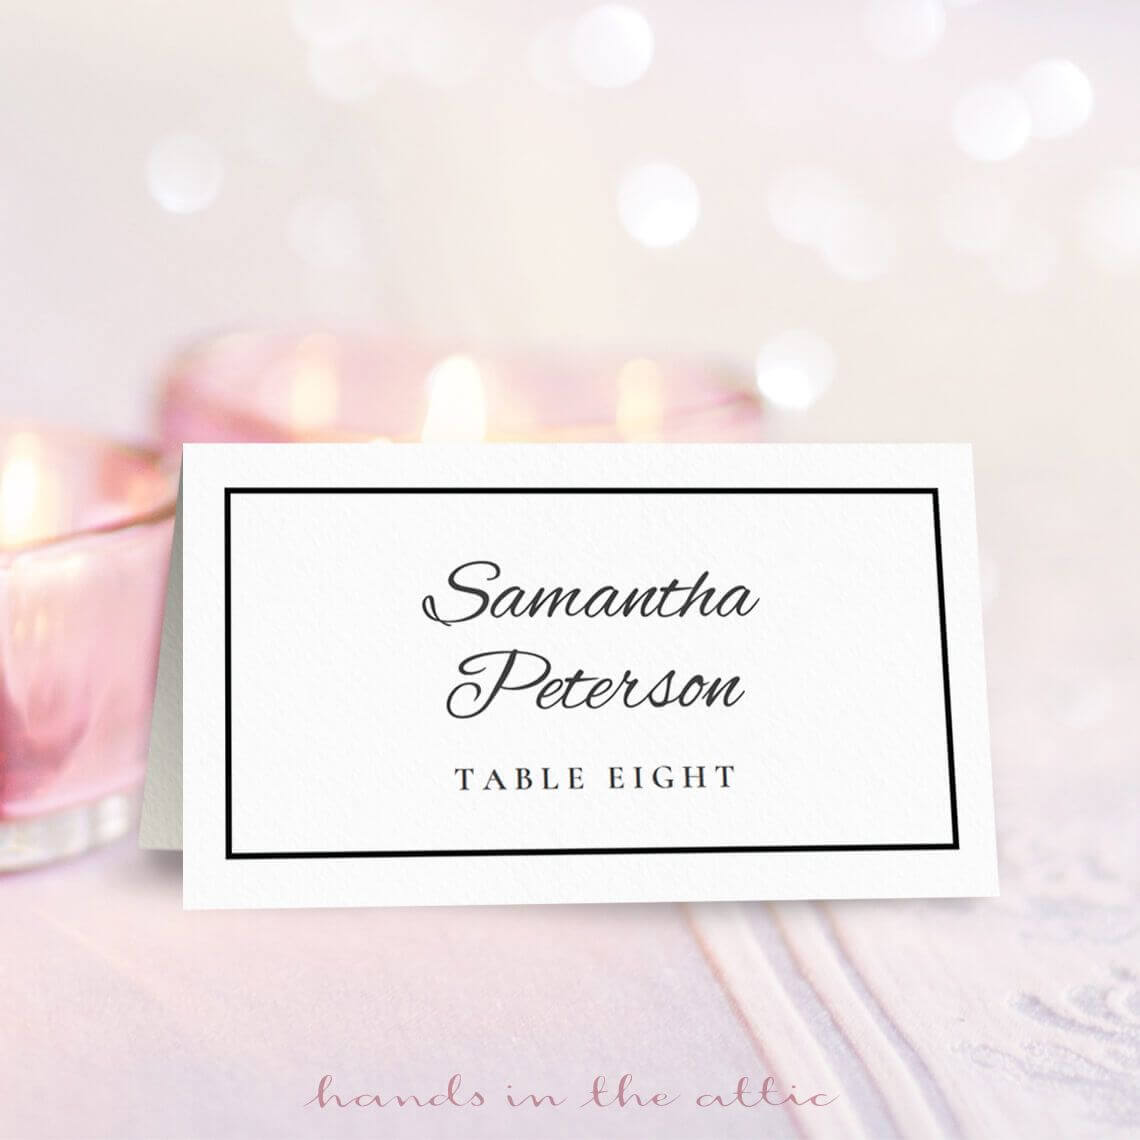 013 Free Place Card Template Templates Word Excellent Ideas Within Free Template For Place Cards 6 Per Sheet